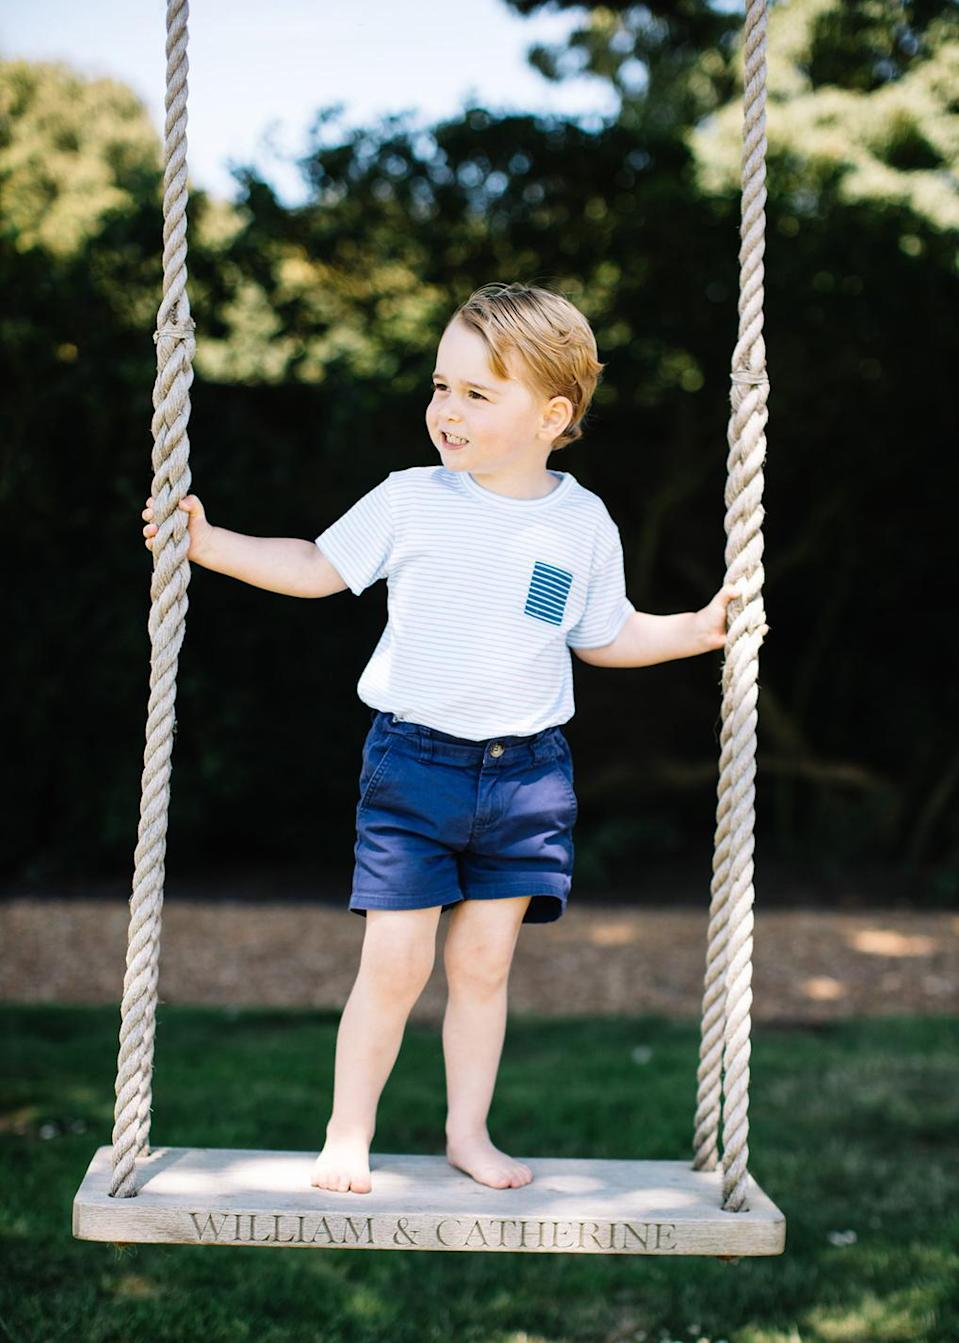 <p>They also released a more casual image of Prince George in a striped shirt and denim shorts. [Photo: Kensington Palace] </p>